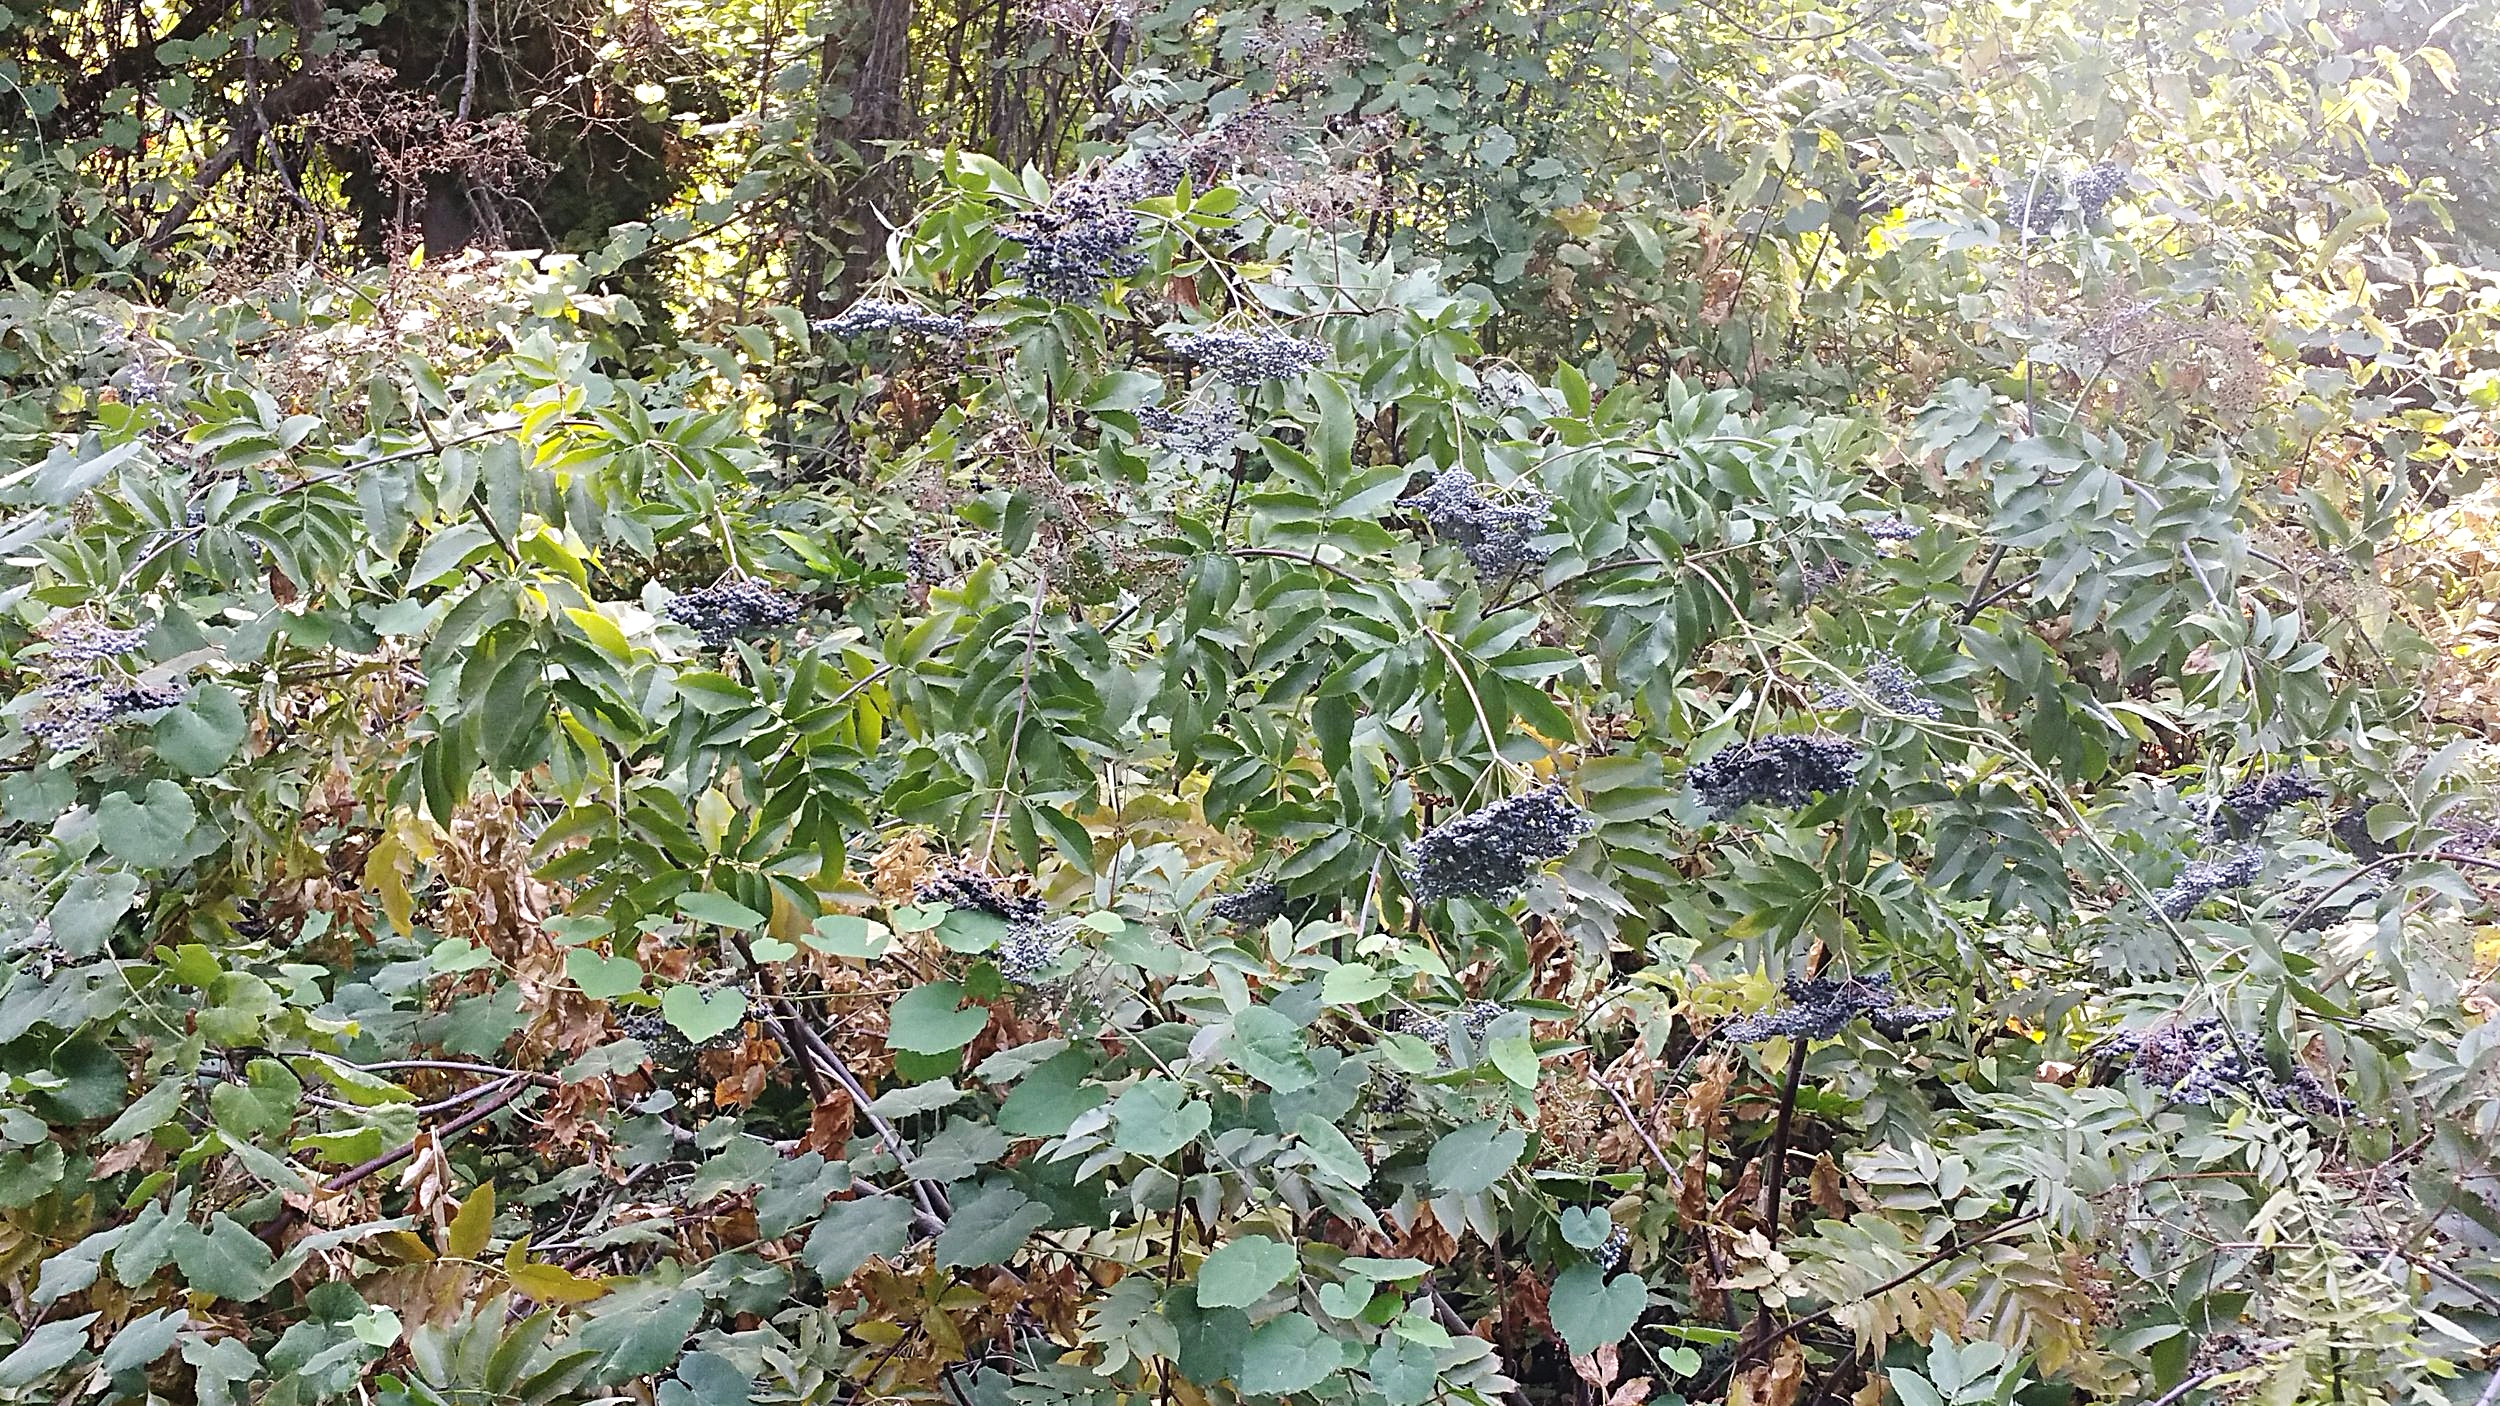 Elderberries want to grow in a tangled jungle; here, you can see them growing interbraided with wild grape